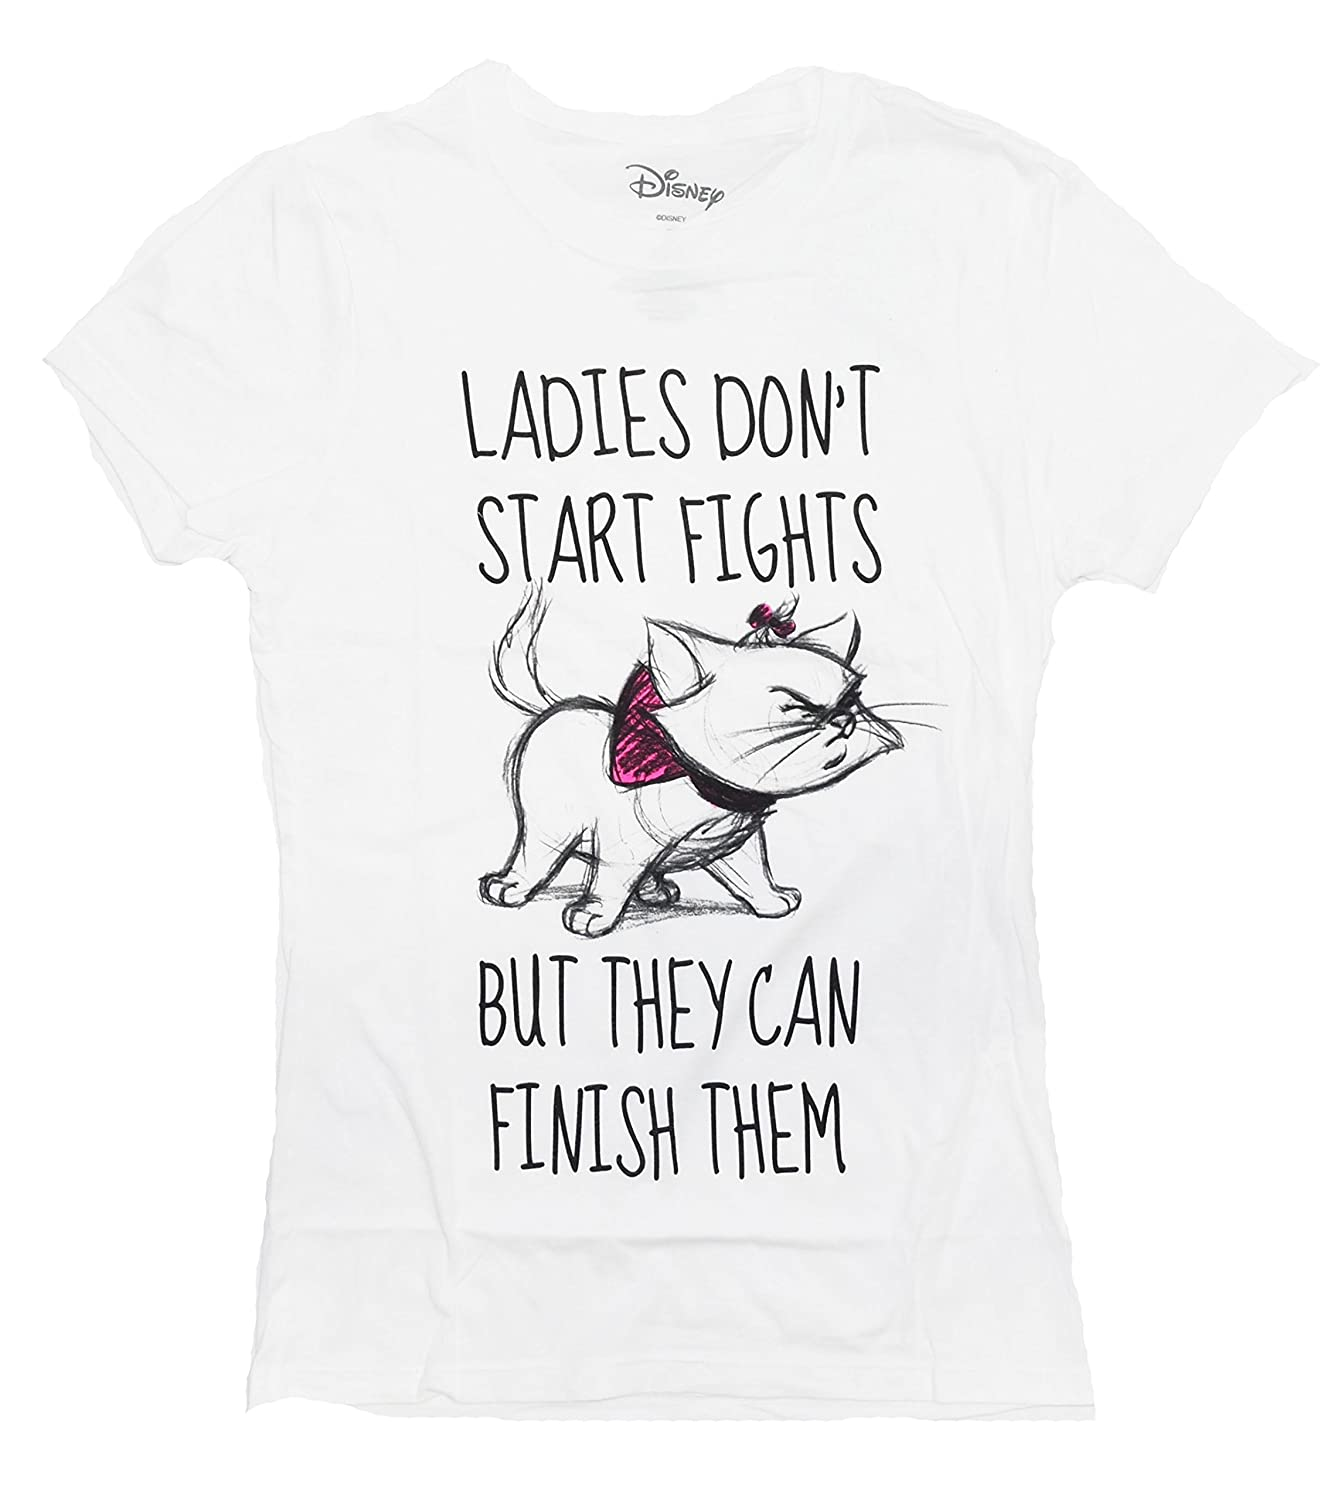 4559807e Officially licensed Disney T-shirt. Juniors are designed for teenagers or  smaller women and have a more fitted look. Marie believes herself to be  quite ...